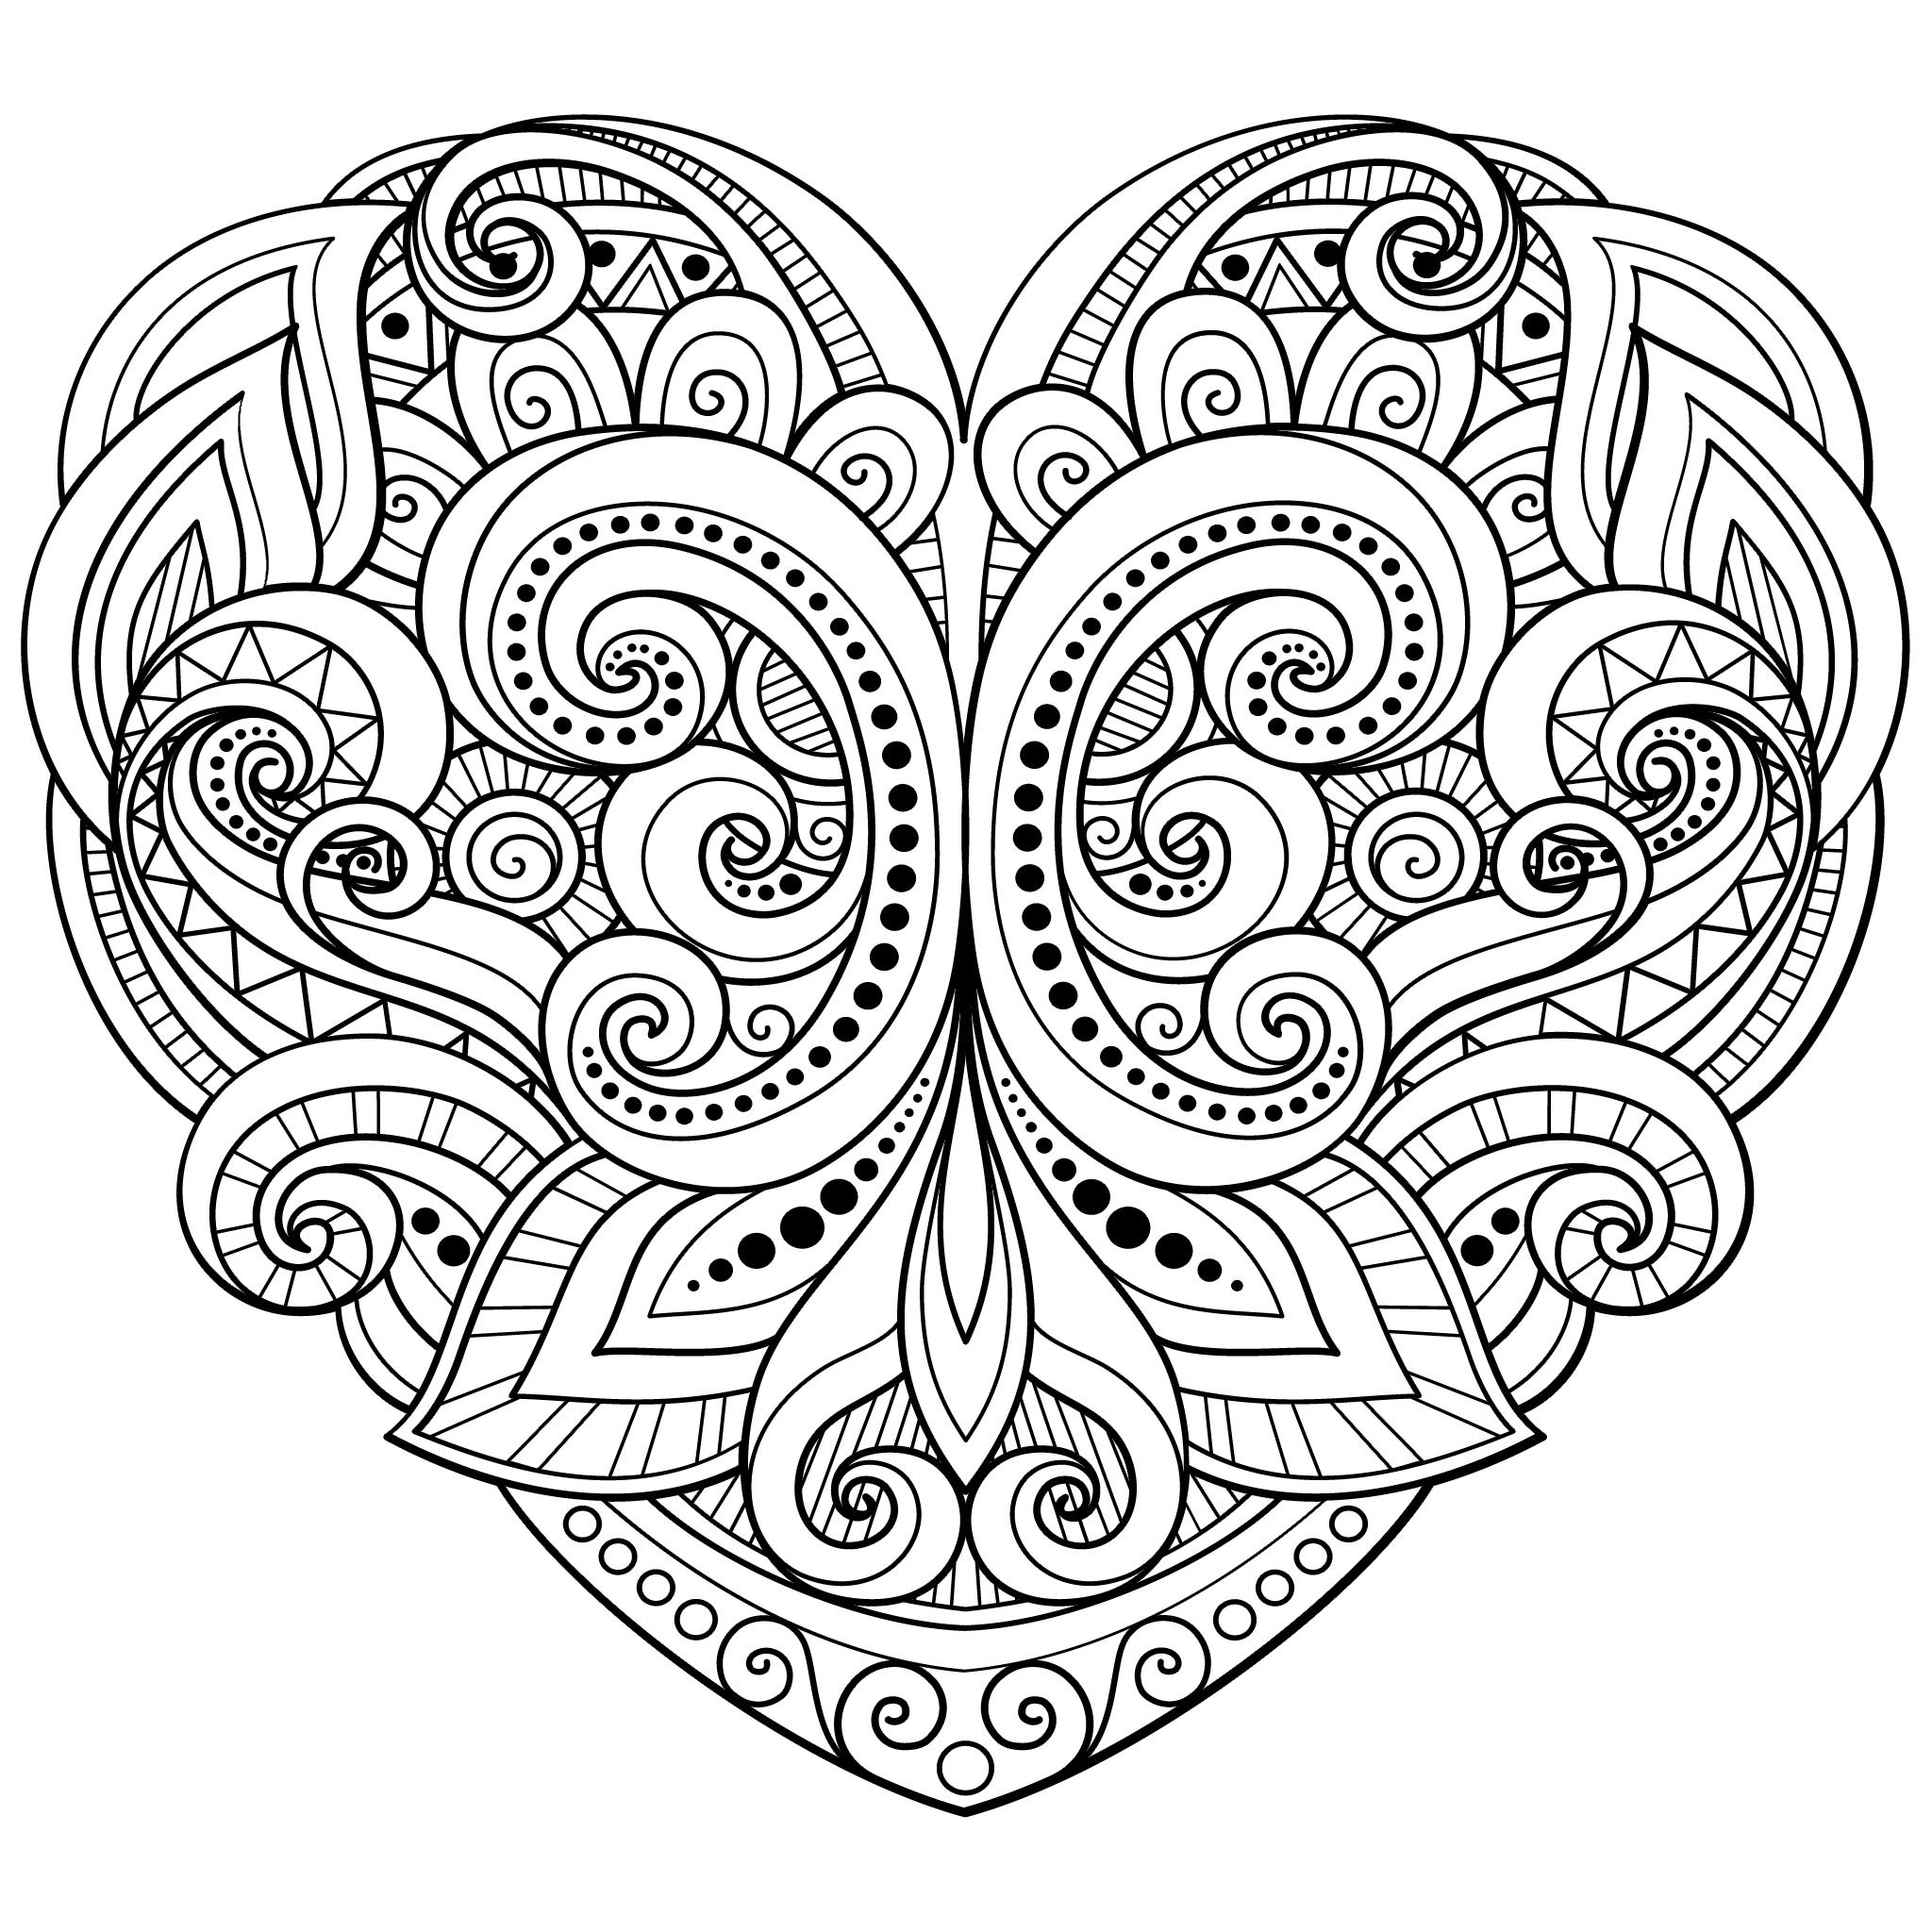 Love Heart Coloring Page Heart Coloring Pages Love Coloring